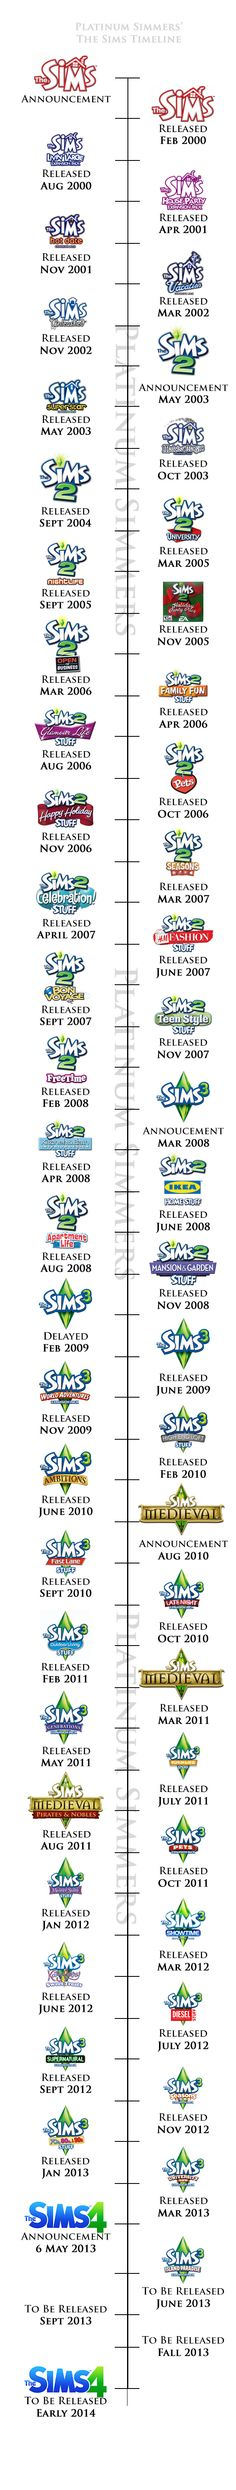 The Sims History in Timelines • Platinum Simmers  #sims3